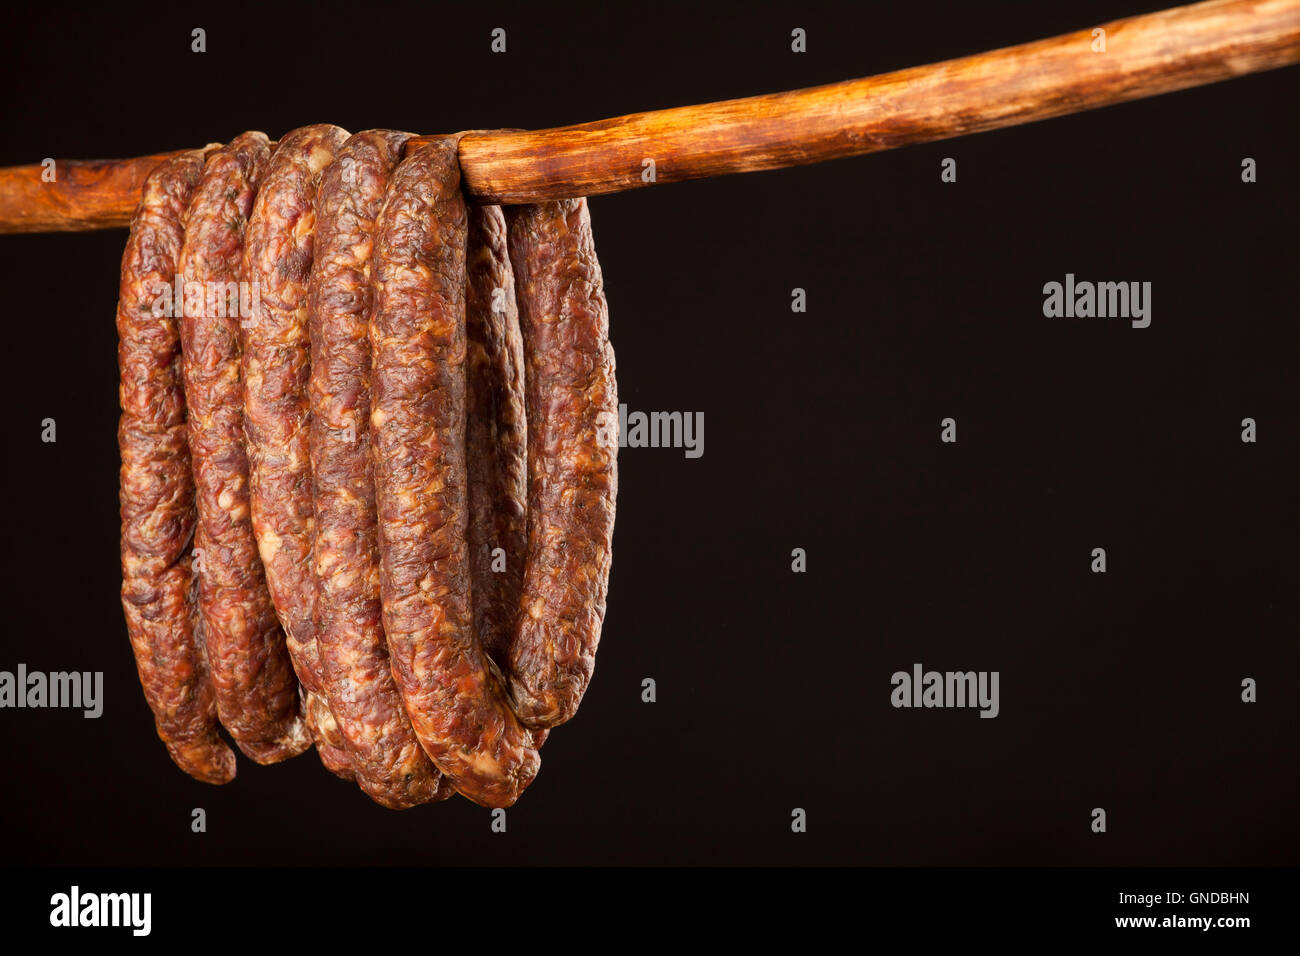 hanging smoked domestic traditional sausage on a stick on black background - Stock Image